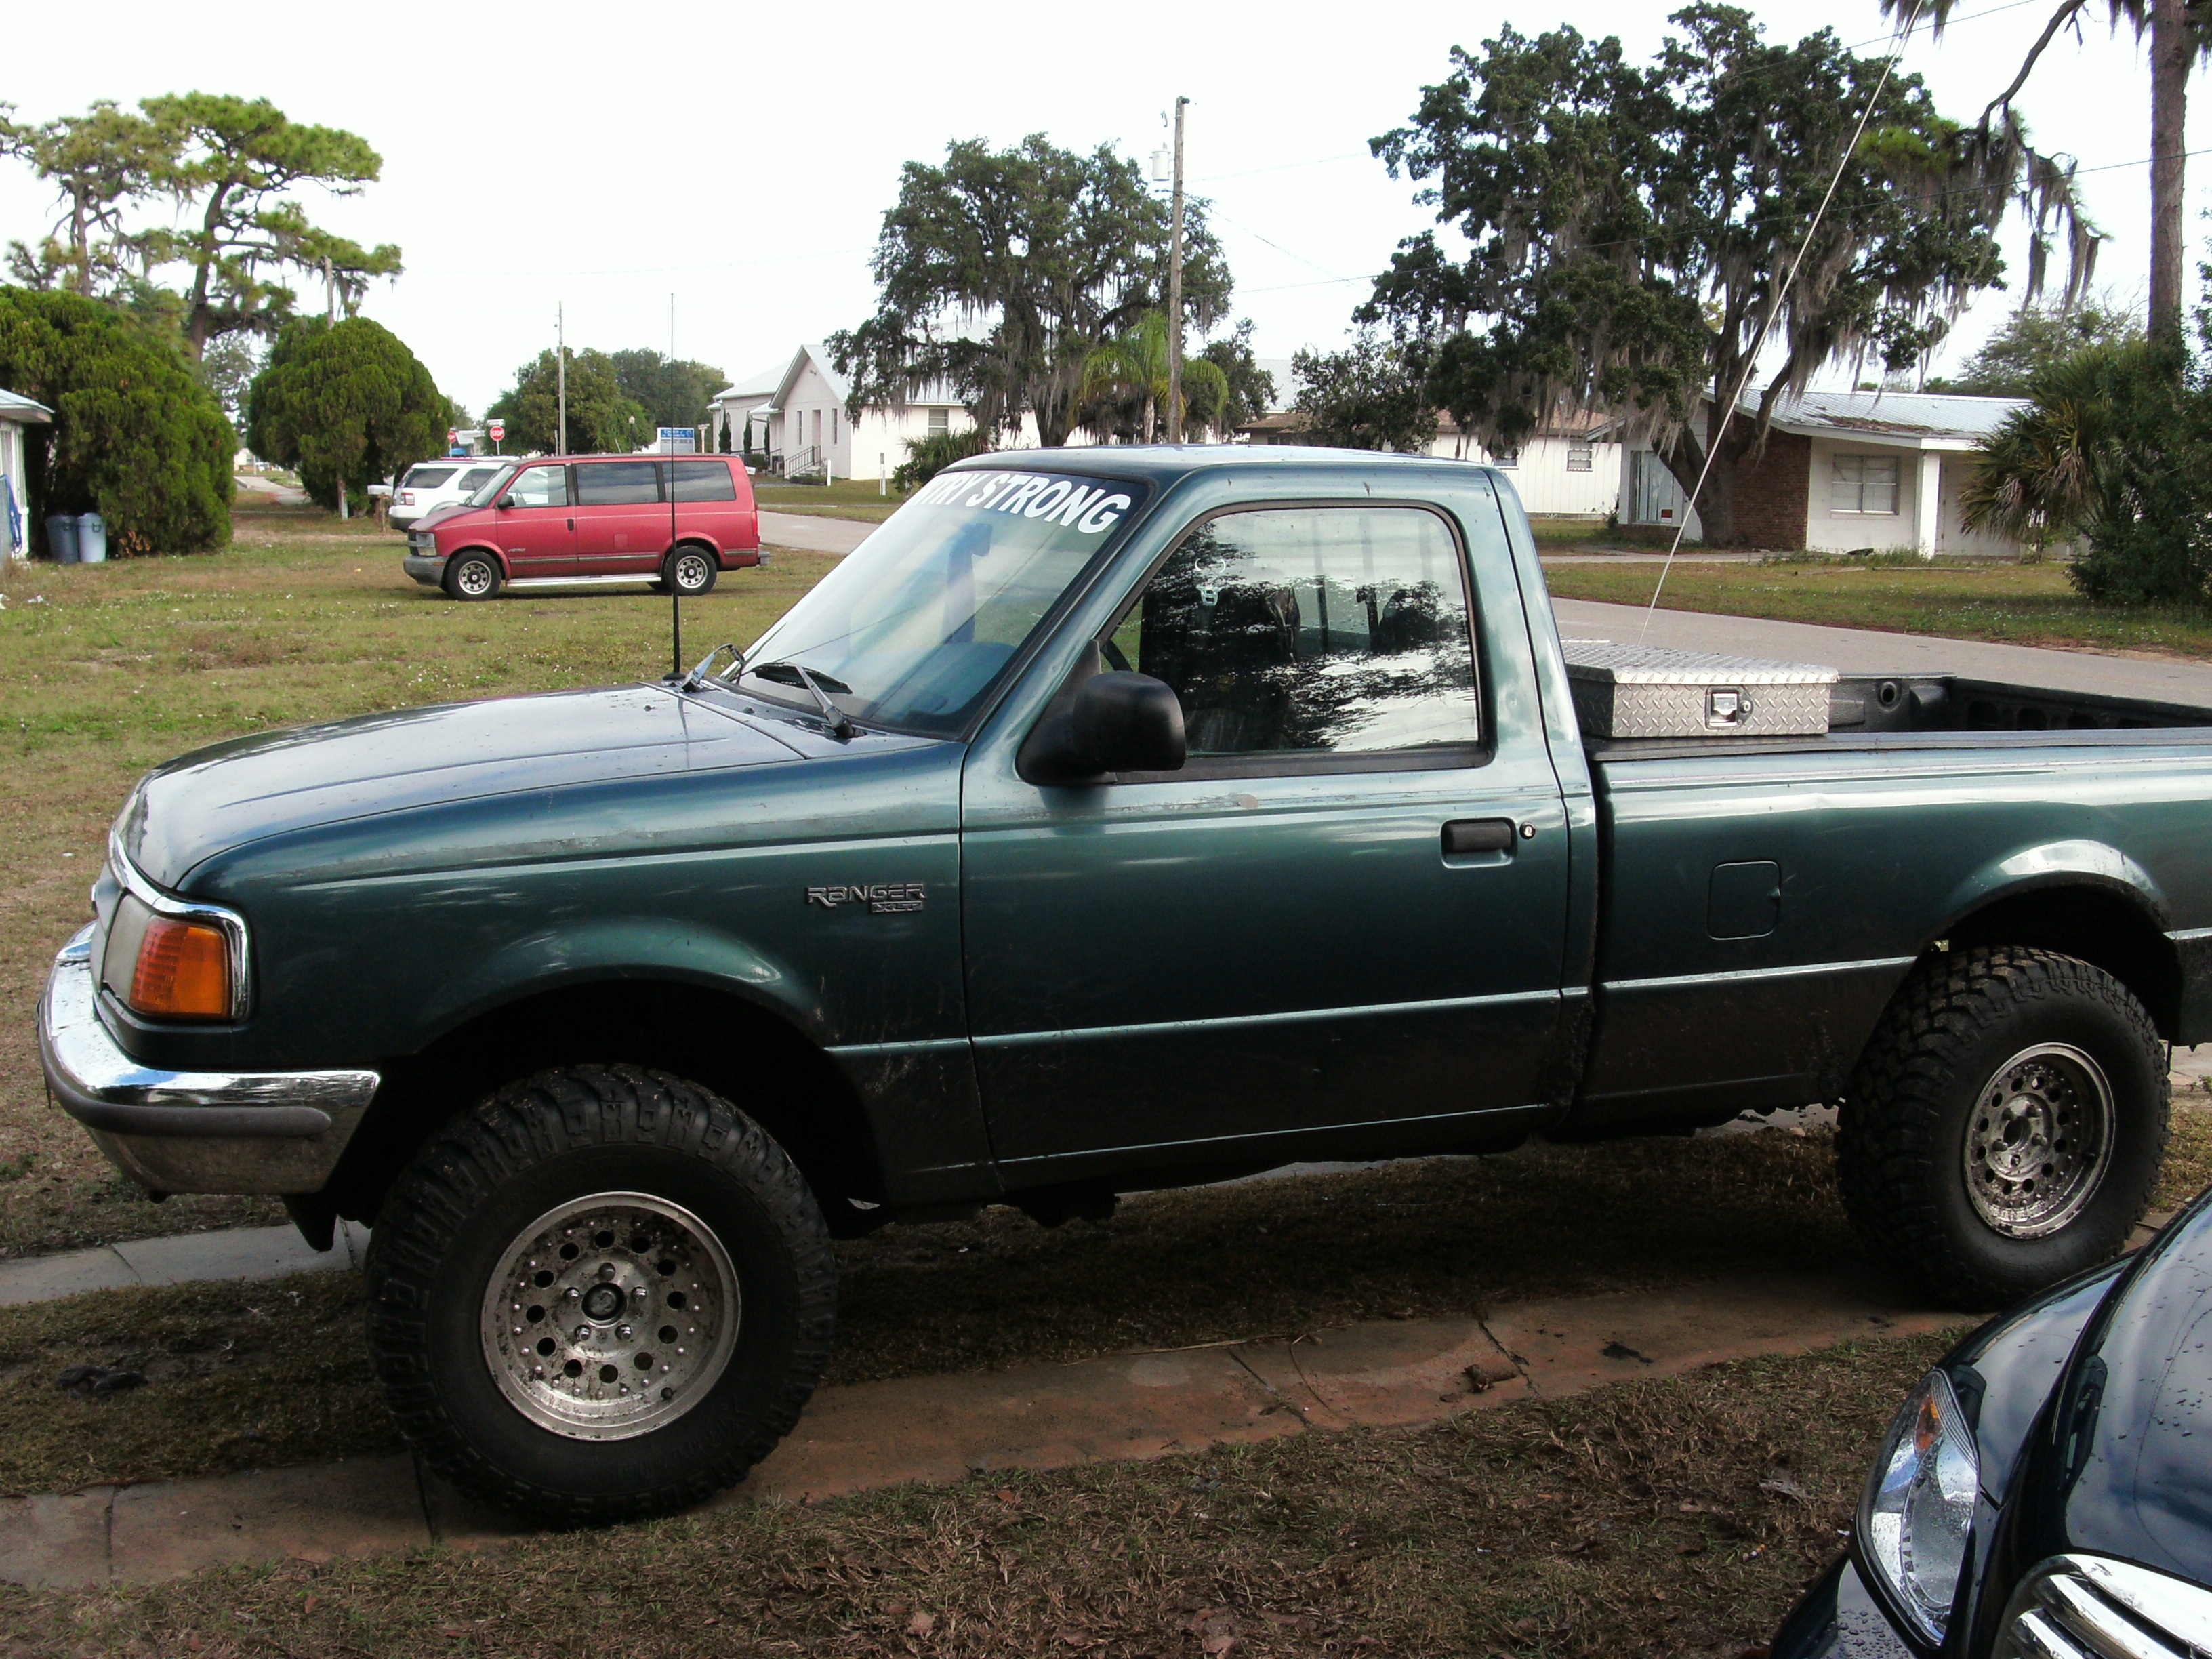 Another countrystrong 1996 Ford Ranger Regular Cab post.